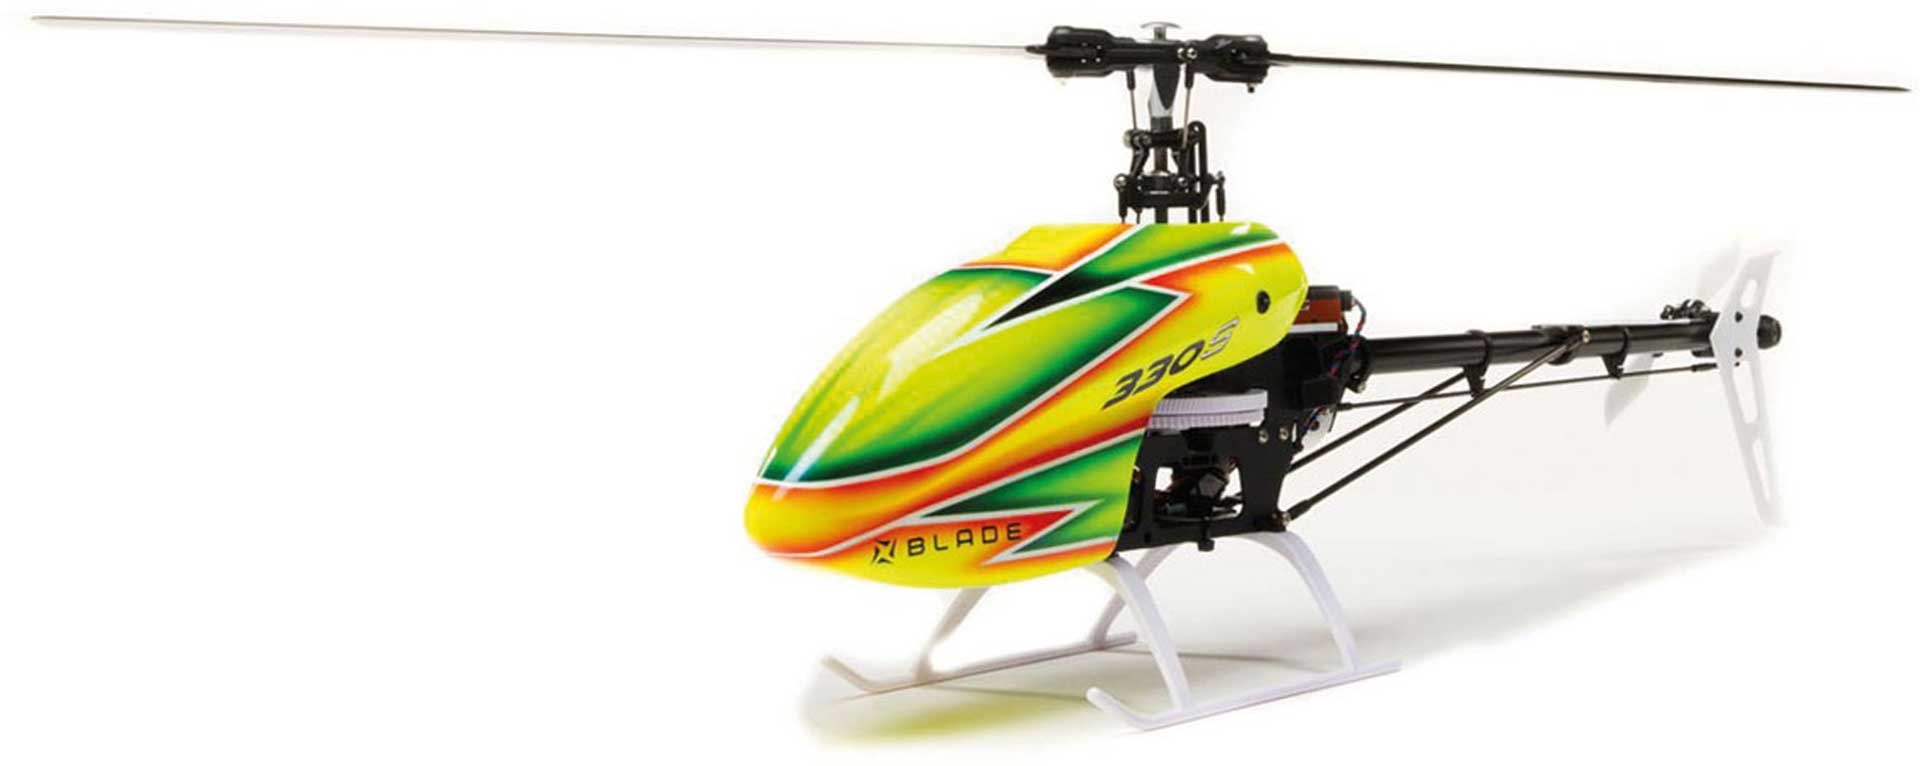 BLADE 330 S BNF BASIC HELI Hubschrauber / Helikopter